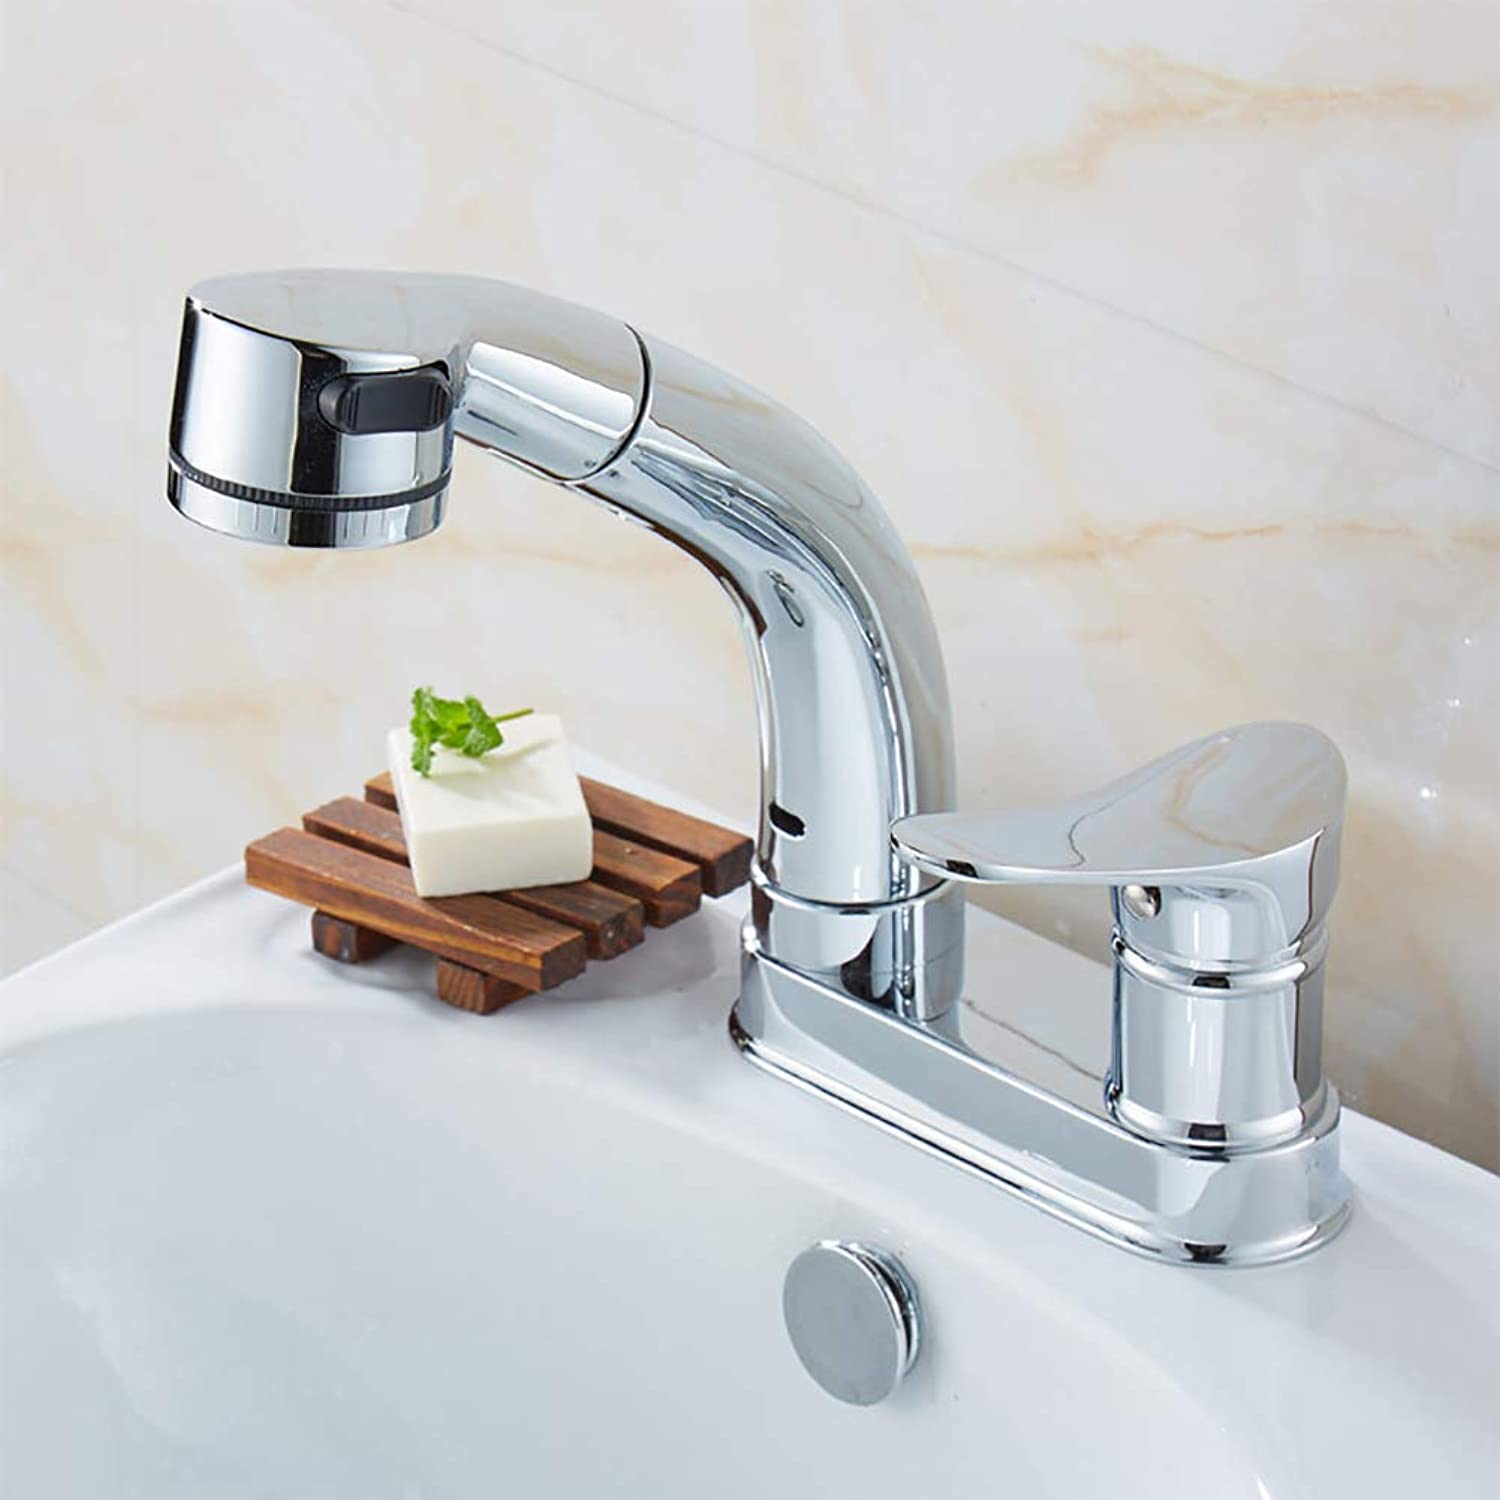 LUTAP Faucet Full Copper Body Two-hole Three-hole Pull-type Wash Basin Hot and Cold Water Can Be Raised And Lowered Retractable Shower 360 ° redating Faucet,Silver